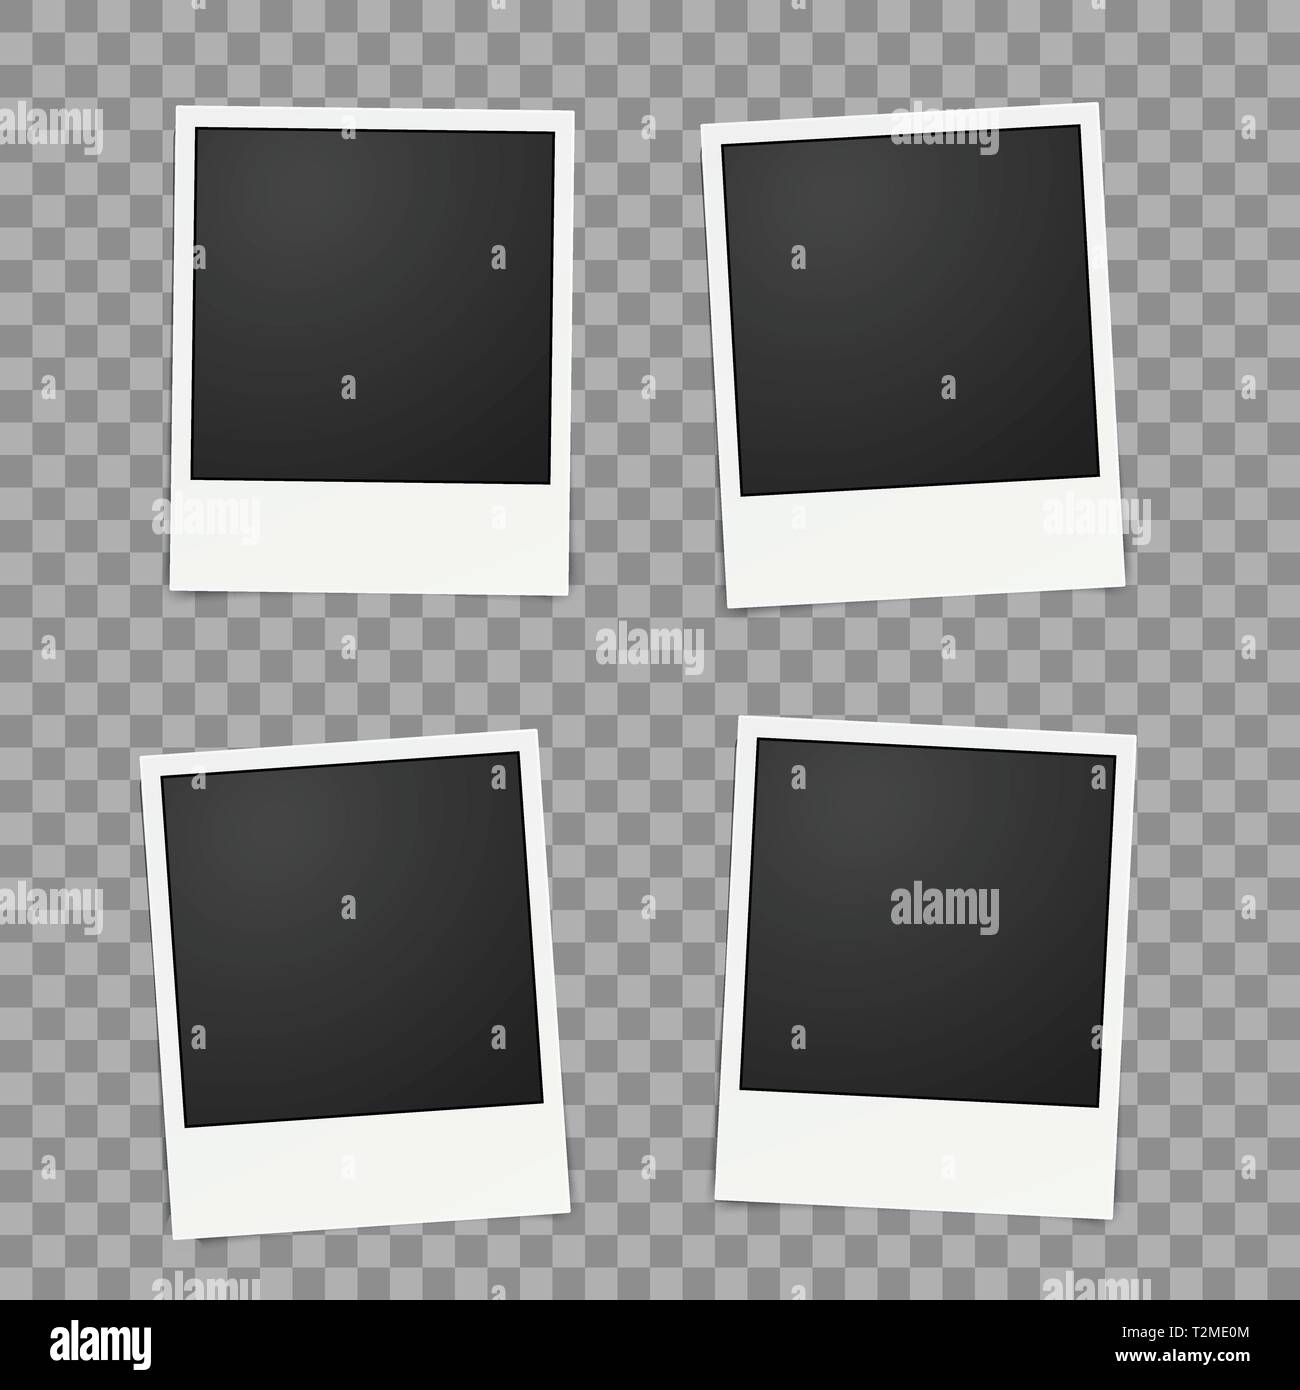 Templates For Photo Polaroid Frame Vector Stock Vector Image Art Alamy Here you can explore hq polaroid frame transparent illustrations, icons and clipart with filter setting polish your personal project or design with these polaroid frame transparent png images, make it. https www alamy com templates for photo polaroid frame vector image242624500 html